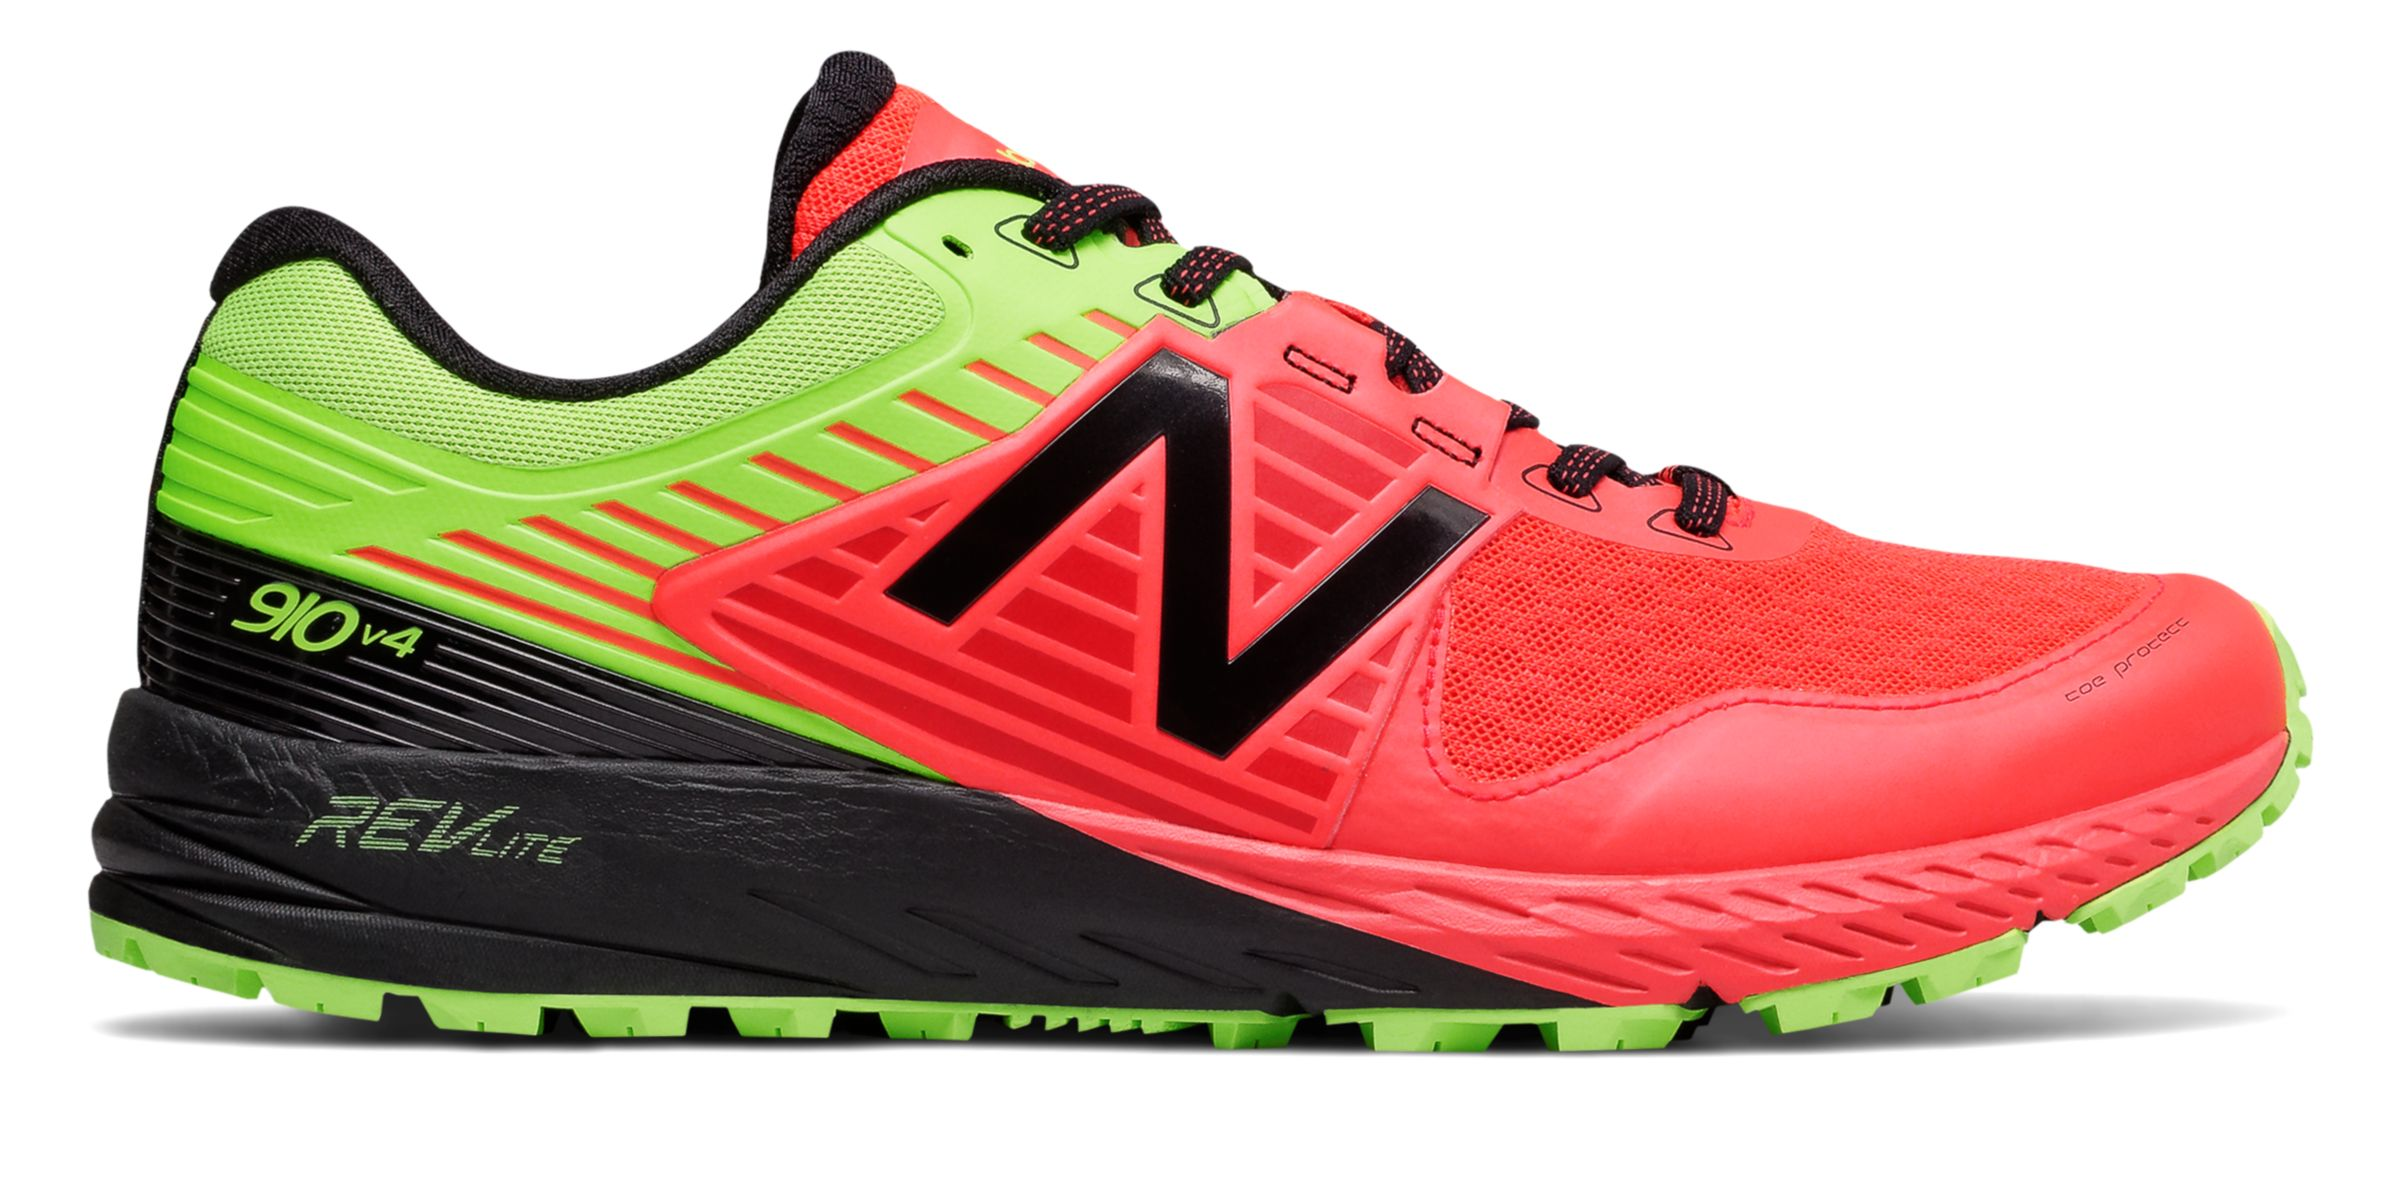 NB New Balance 910v4 Trail, Energy Red with Energy Lime & Black